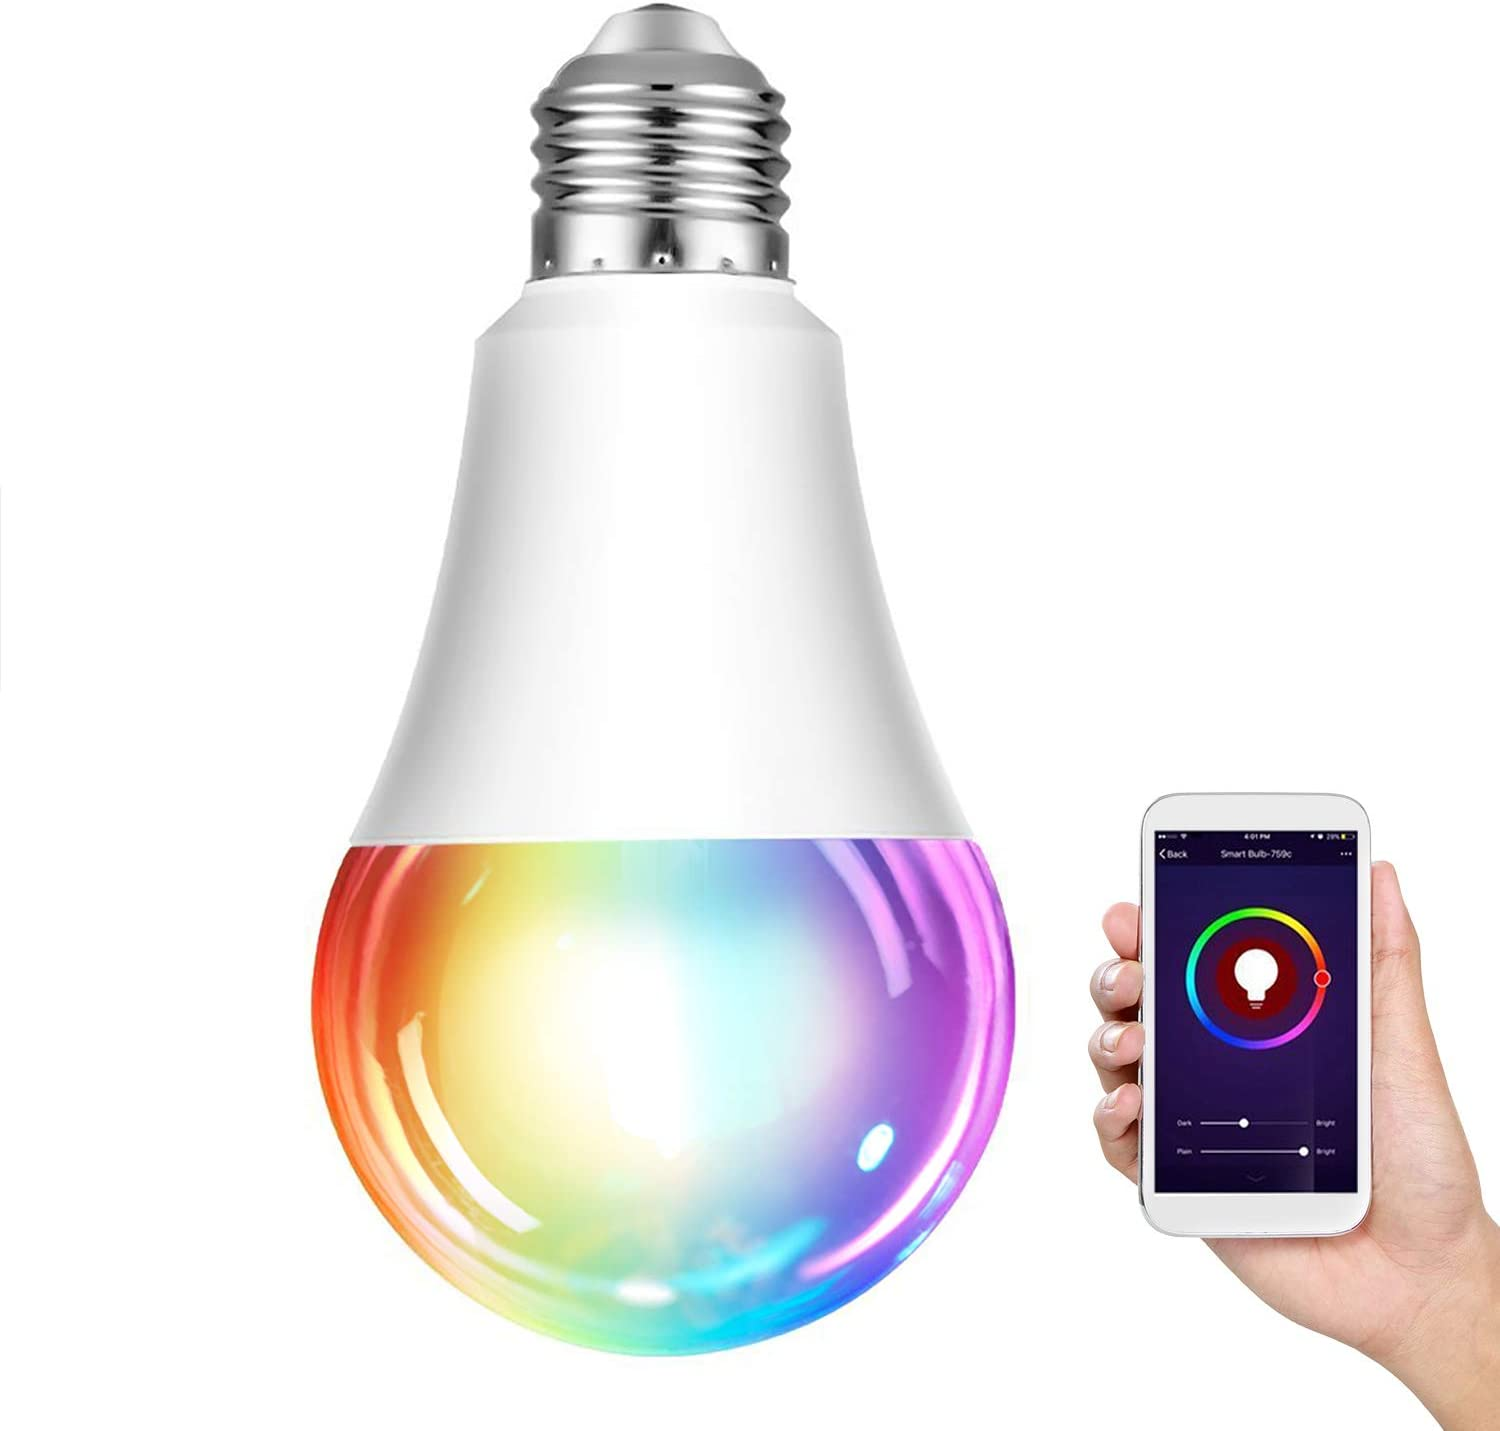 Bombilla wifi inteligente LED